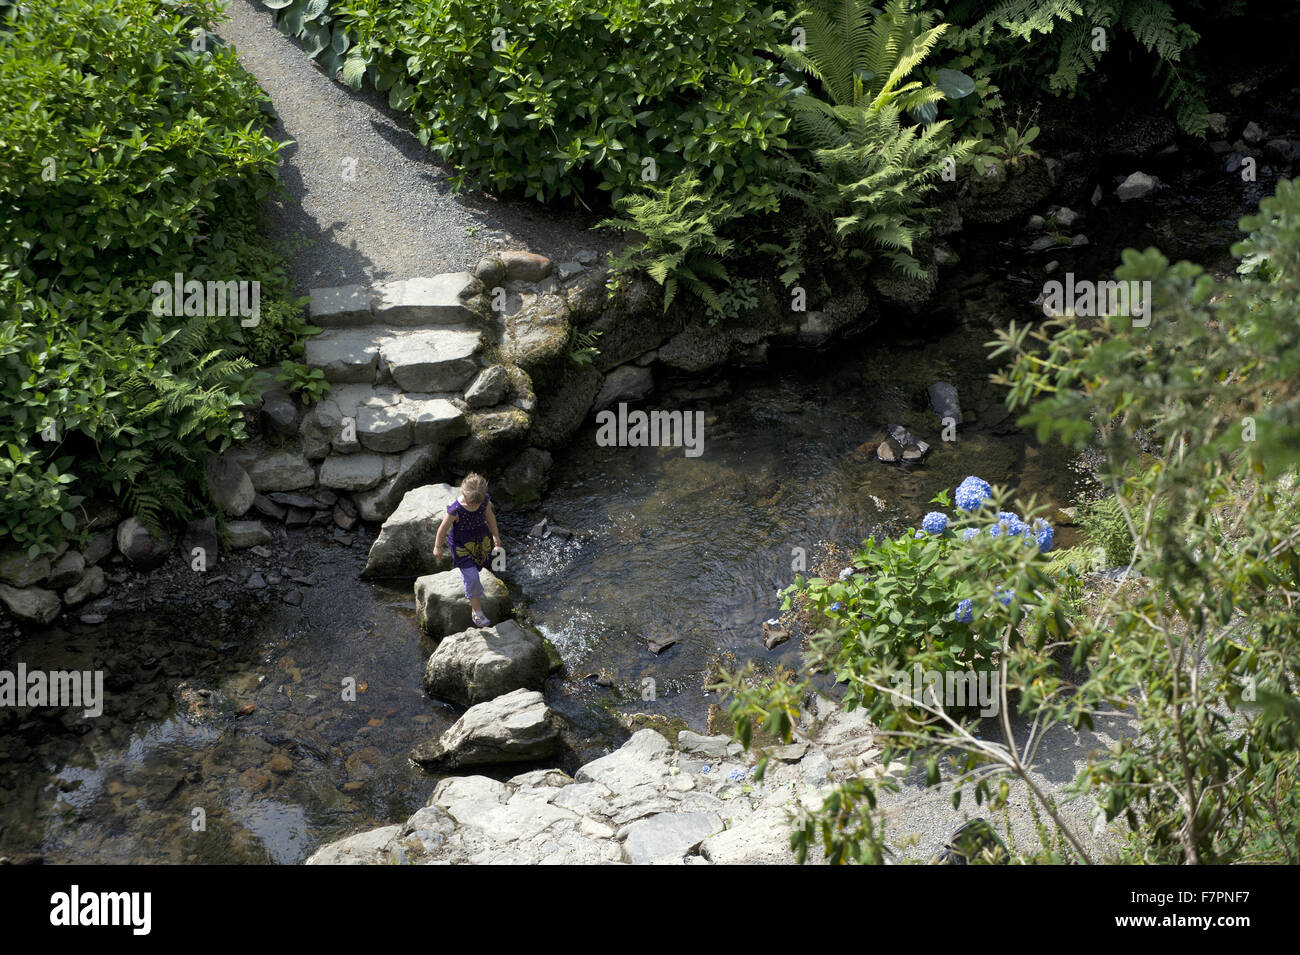 A view over stepping stones at Bodnant Garden, Clwyd, Wales. Created by five generations of one family, Bodnant Stock Photo